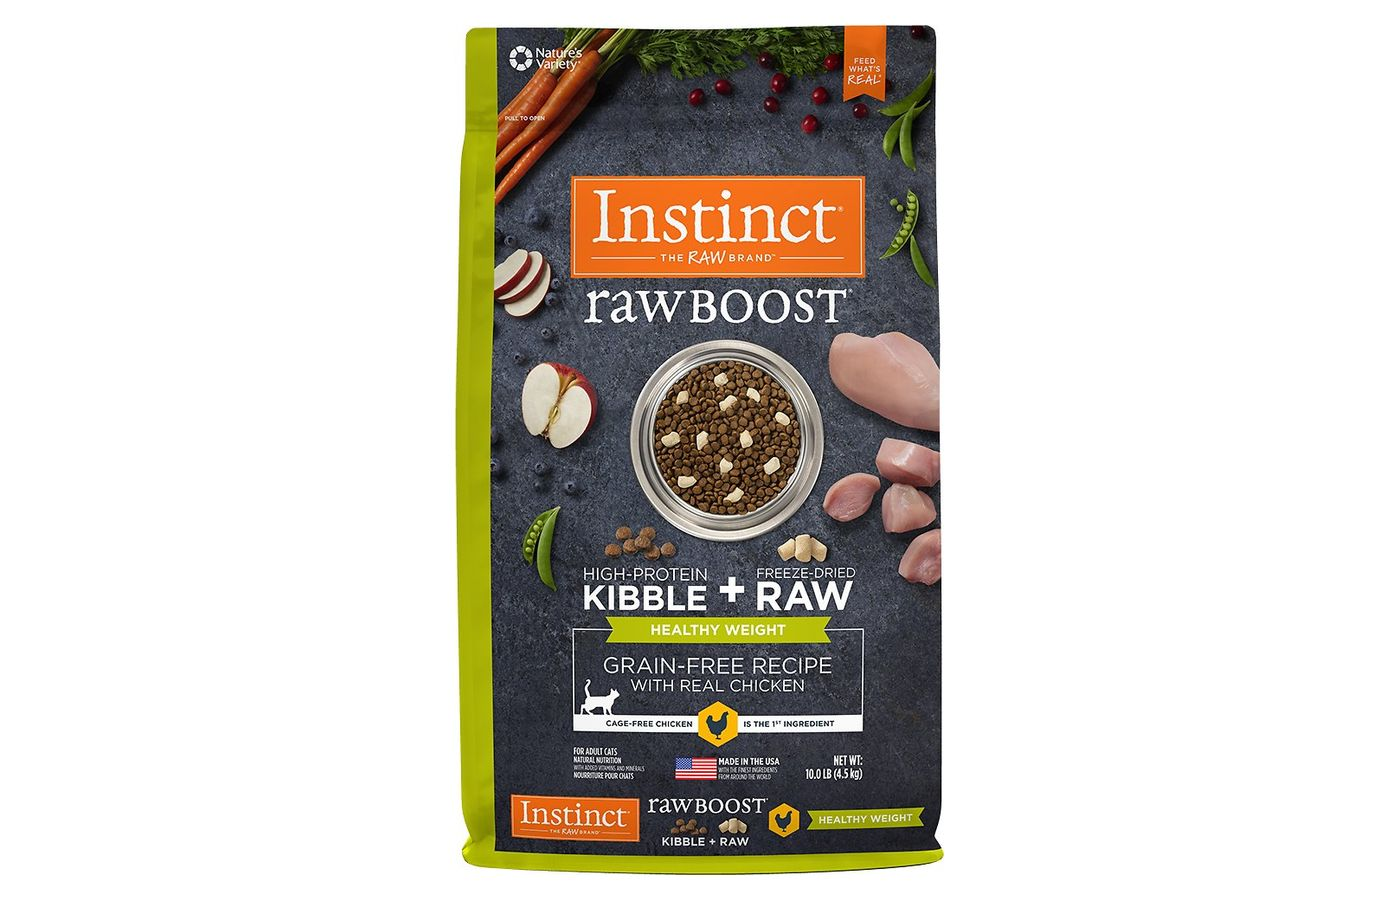 Instinct by Nature's Variety Raw Boost Healthy Weight Dry Cat Food